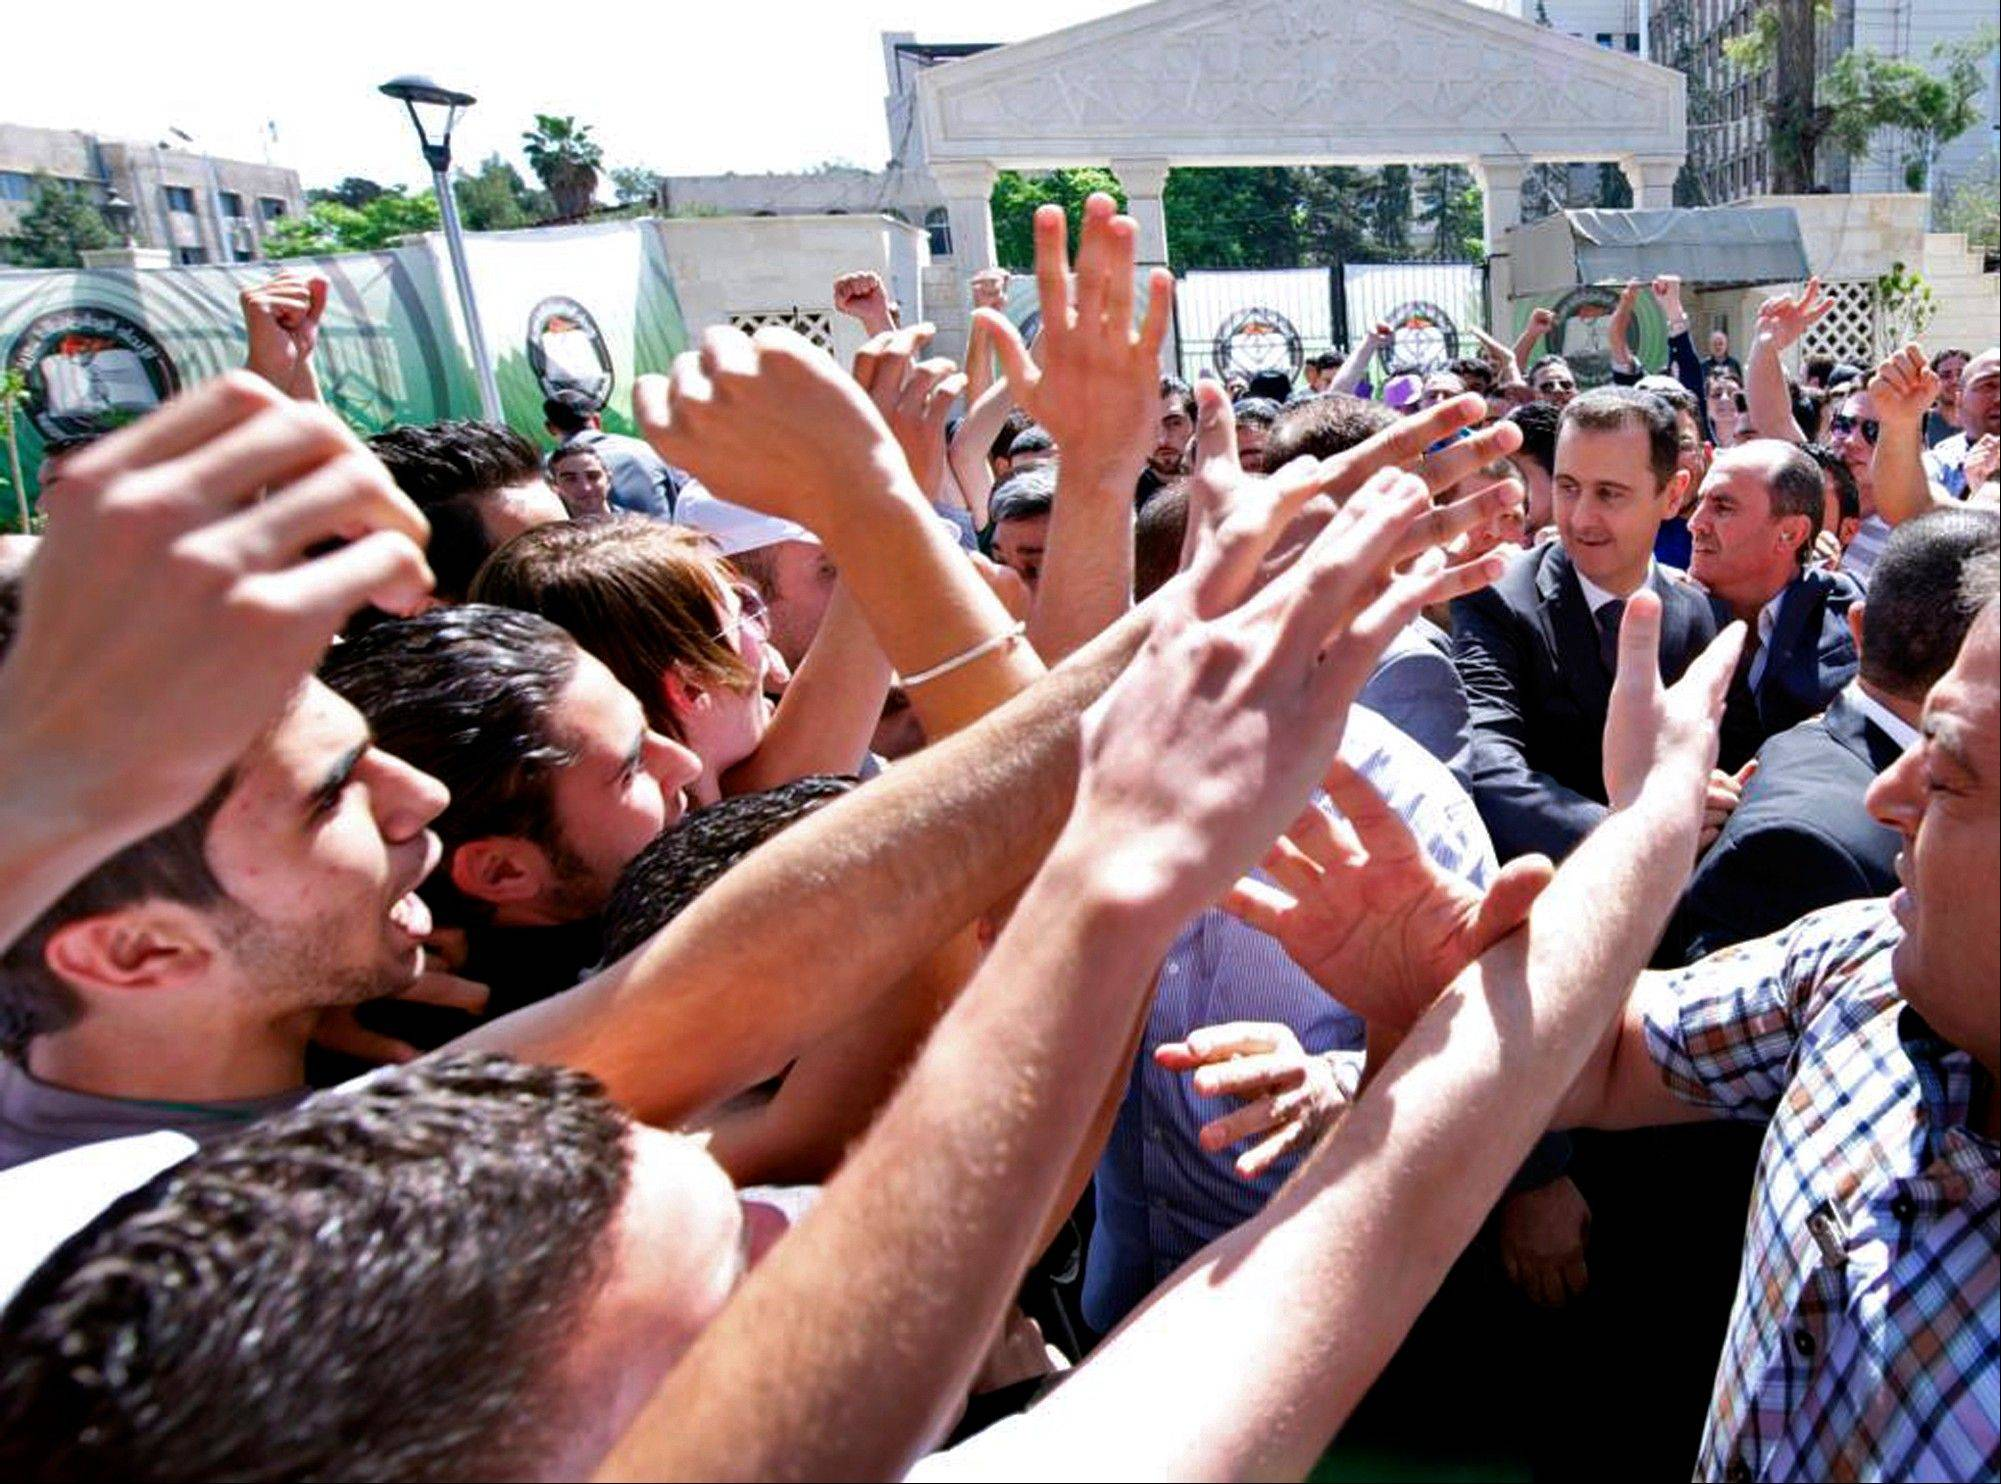 "This photo, released on the official Facebook page of Syrian President Bashar Assad, shows Syrian president Bashar Assad, right, surrounded by bodyguards as young people, wave at him during the inauguration ceremony on Saturday of a statue dedicated to ""martyrs"" from Syrian universities who died in the country's two-year-old uprising and civil war, in Damascus."